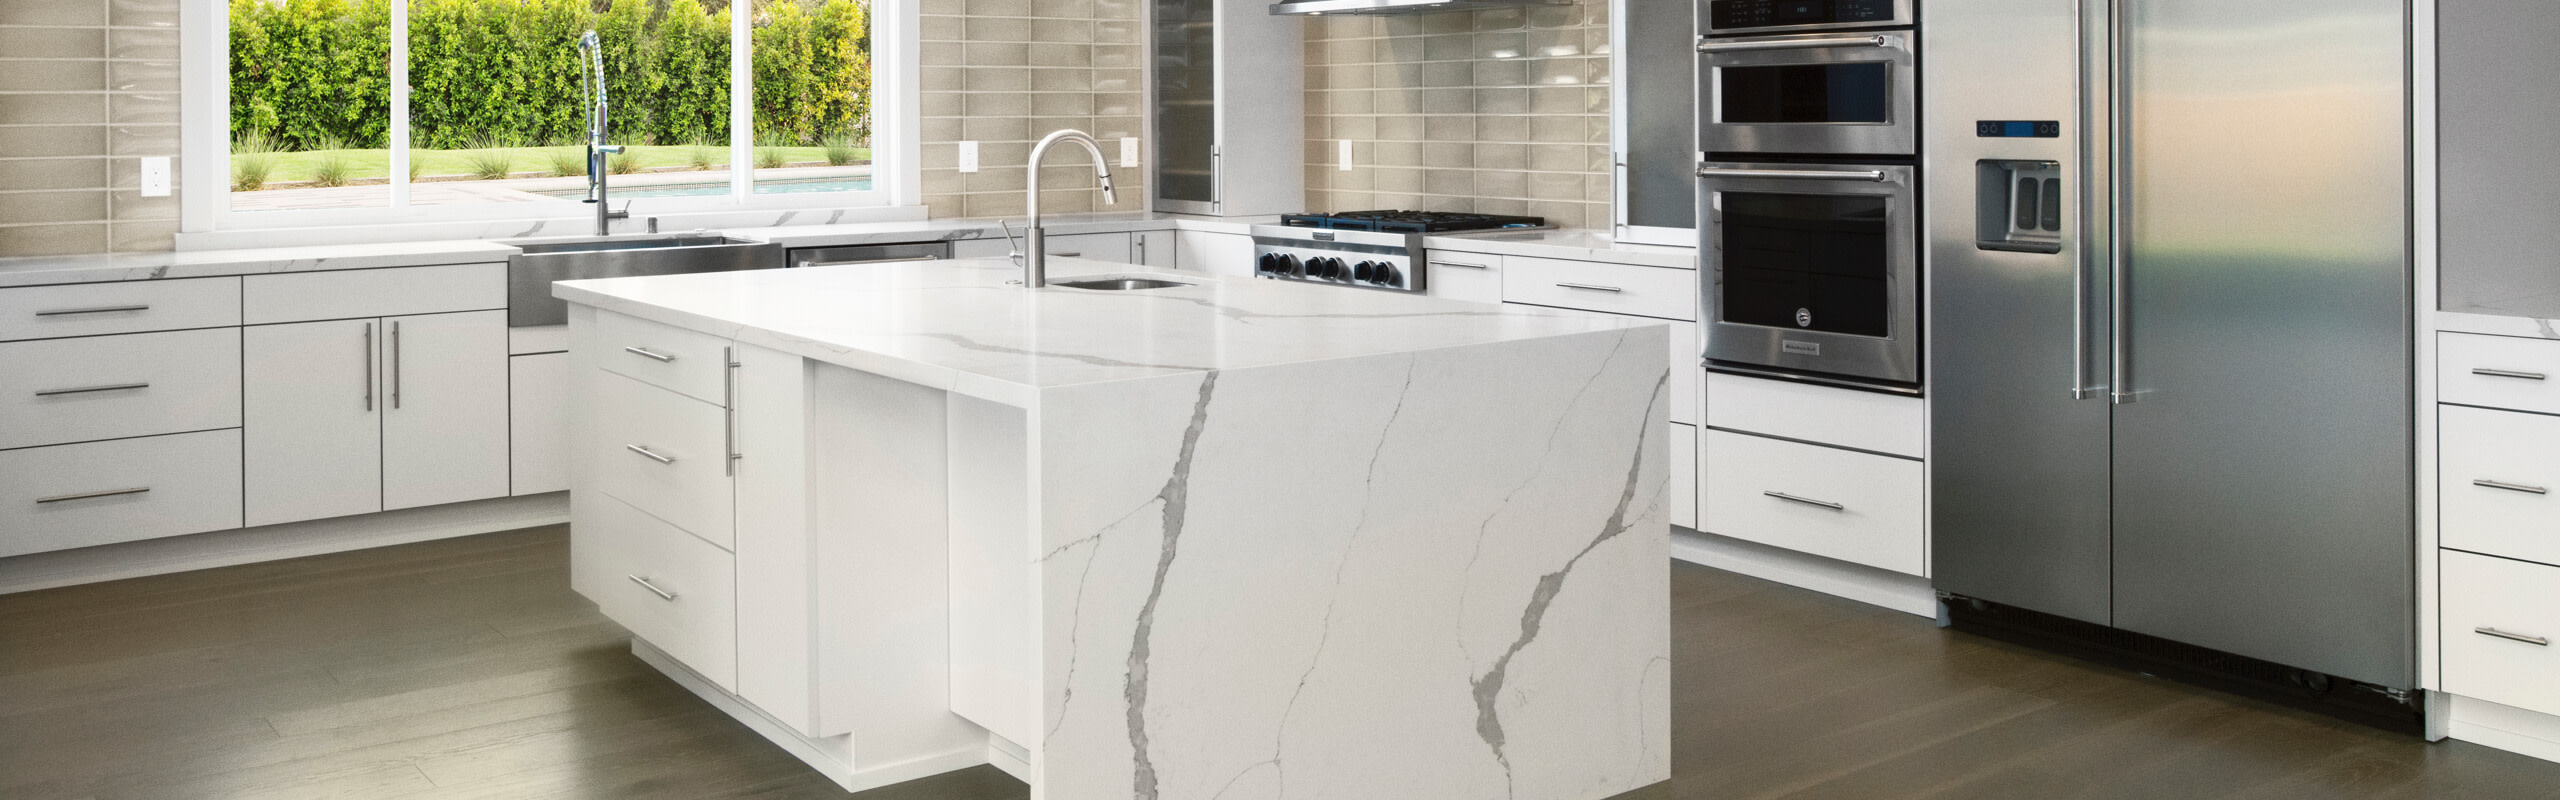 Sequel Quartz Countertop In Kitchen